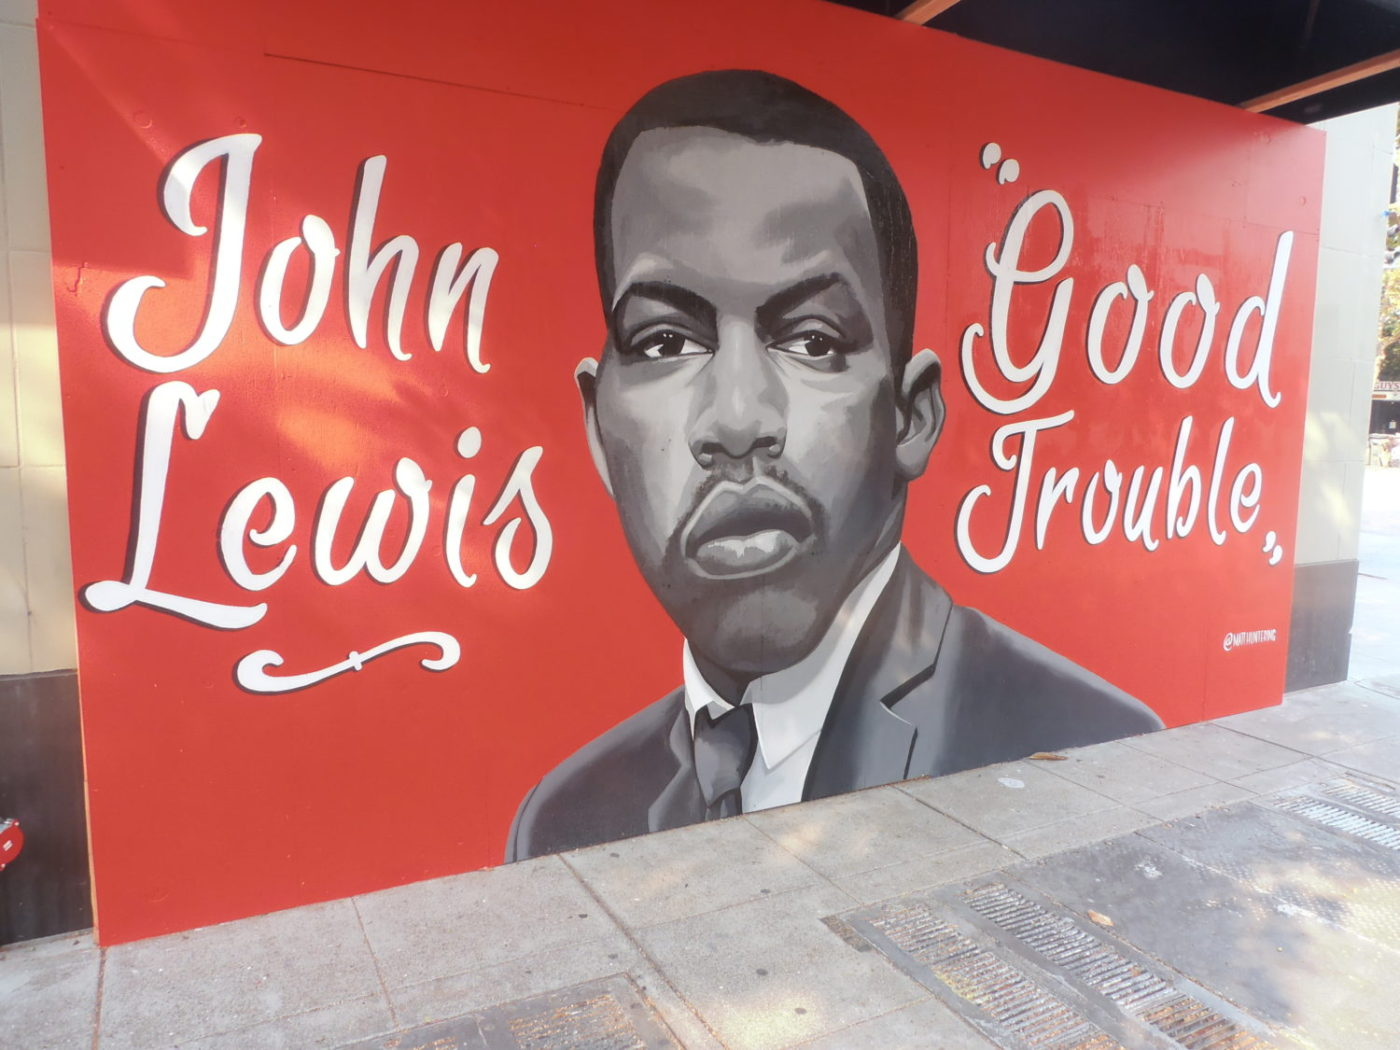 Good-Trouble-mural-for-John-Lewis-in-Black-Arts-Movement-Business-District-by-Baba-Jahahara-1400x1050, Finally! Baba Jalil will be freed!, Culture Currents